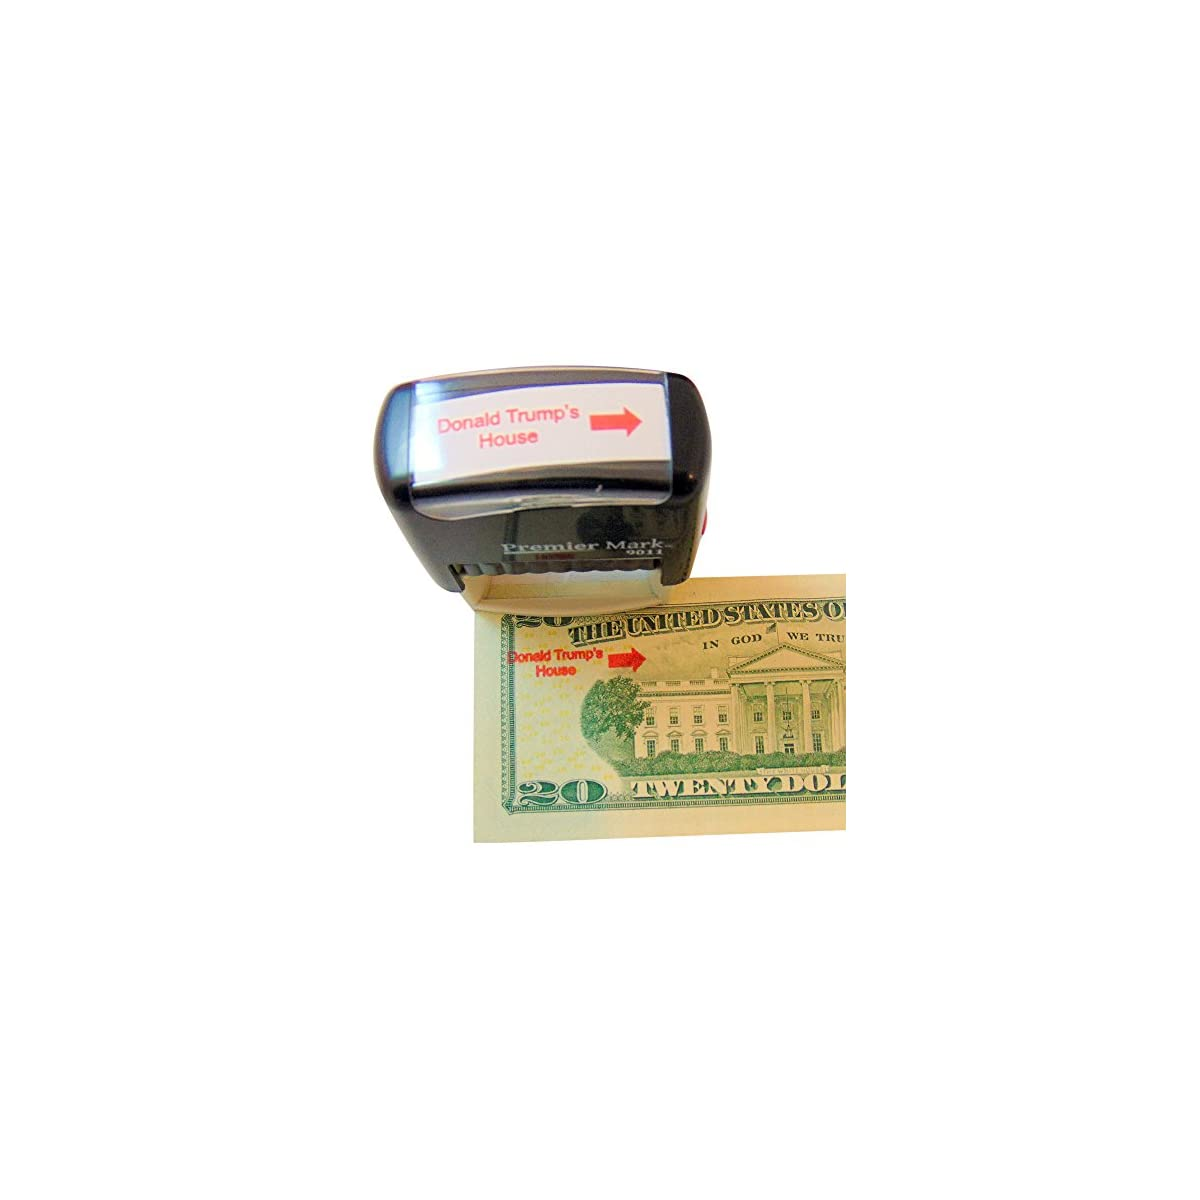 Westman Works Donald Trump's House Self Inking Rubber Stamp with Red Ink and Arrow